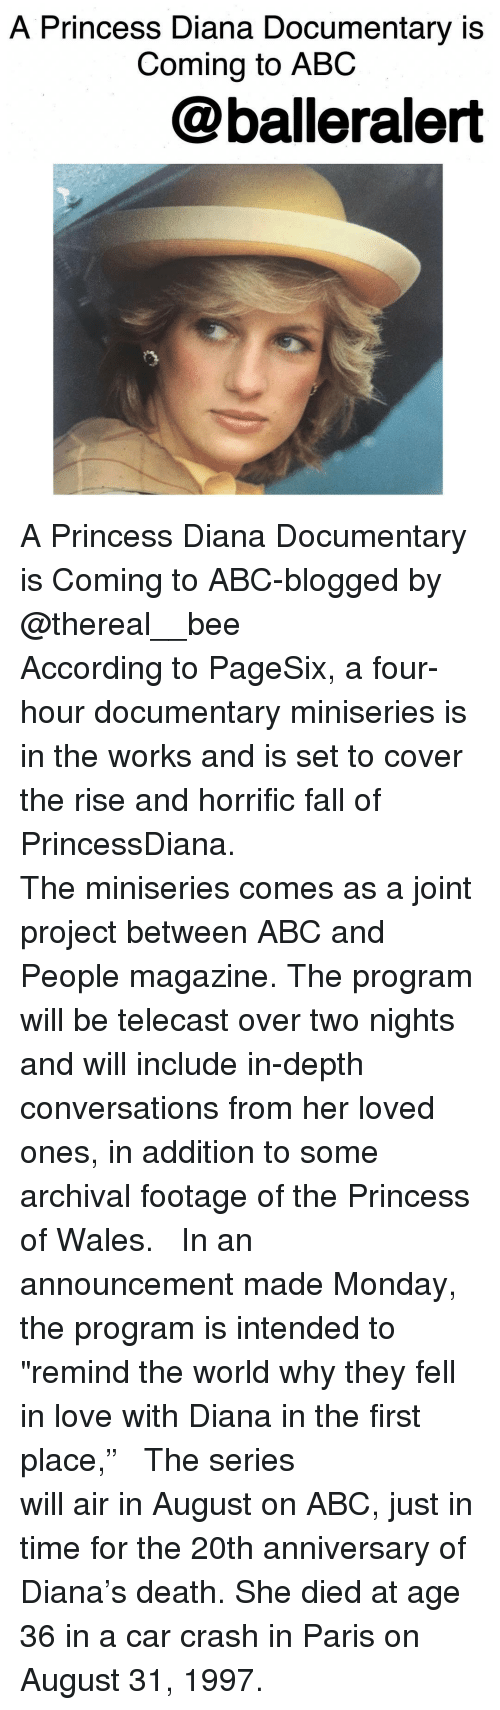 """Car Crashing: A Princess Diana Documentary is  Coming to ABC  @balleralert A Princess Diana Documentary is Coming to ABC-blogged by @thereal__bee ⠀⠀⠀⠀⠀⠀⠀⠀⠀ ⠀⠀⠀⠀⠀⠀⠀⠀⠀ According to PageSix, a four-hour documentary miniseries is in the works and is set to cover the rise and horrific fall of PrincessDiana. ⠀⠀⠀⠀⠀⠀⠀⠀⠀ ⠀⠀⠀⠀⠀⠀⠀⠀⠀ The miniseries comes as a joint project between ABC and People magazine. The program will be telecast over two nights and will include in-depth conversations from her loved ones, in addition to some archival footage of the Princess of Wales. ⠀⠀⠀⠀⠀⠀⠀⠀⠀ ⠀⠀⠀⠀⠀⠀⠀⠀⠀ In an announcement made Monday, the program is intended to """"remind the world why they fell in love with Diana in the first place,"""" ⠀⠀⠀⠀⠀⠀⠀⠀⠀ ⠀⠀⠀⠀⠀⠀⠀⠀⠀ The series will air in August on ABC, just in time for the 20th anniversary of Diana's death. She died at age 36 in a car crash in Paris on August 31, 1997."""